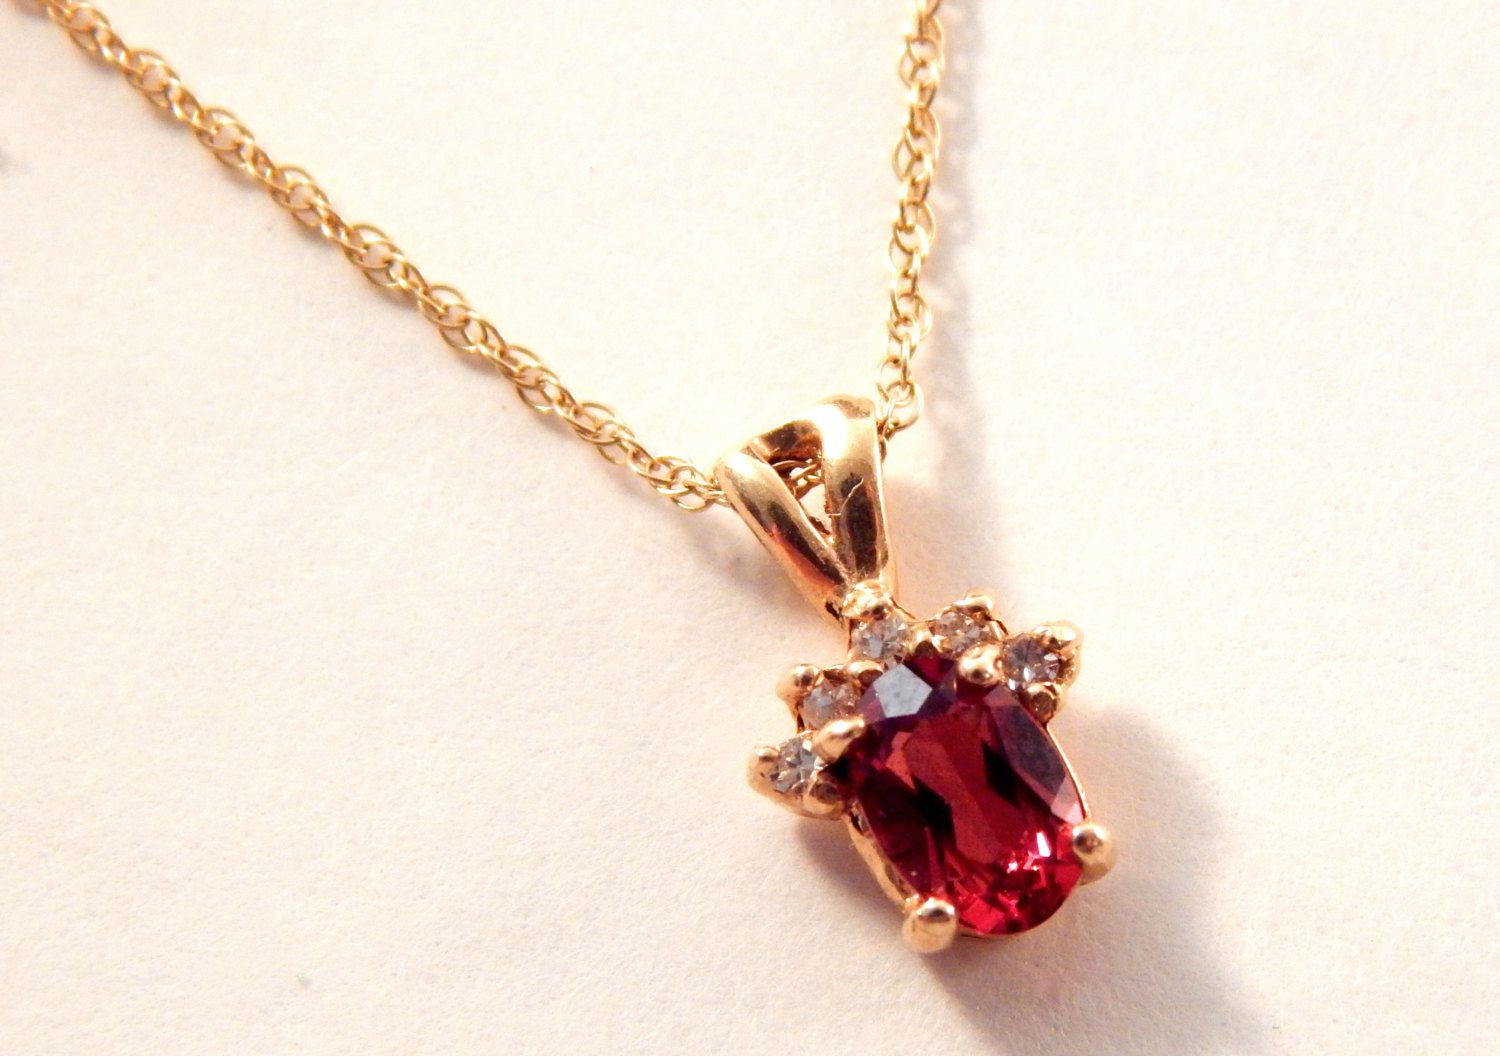 """Garnet Solitaire with Diamond Accents Women's Necklace 14k Yellow Gold Vintage Fine Jewelry January Birthstone Gift Pendant 18"""" Chain by SpringJewelryThings on Etsy"""